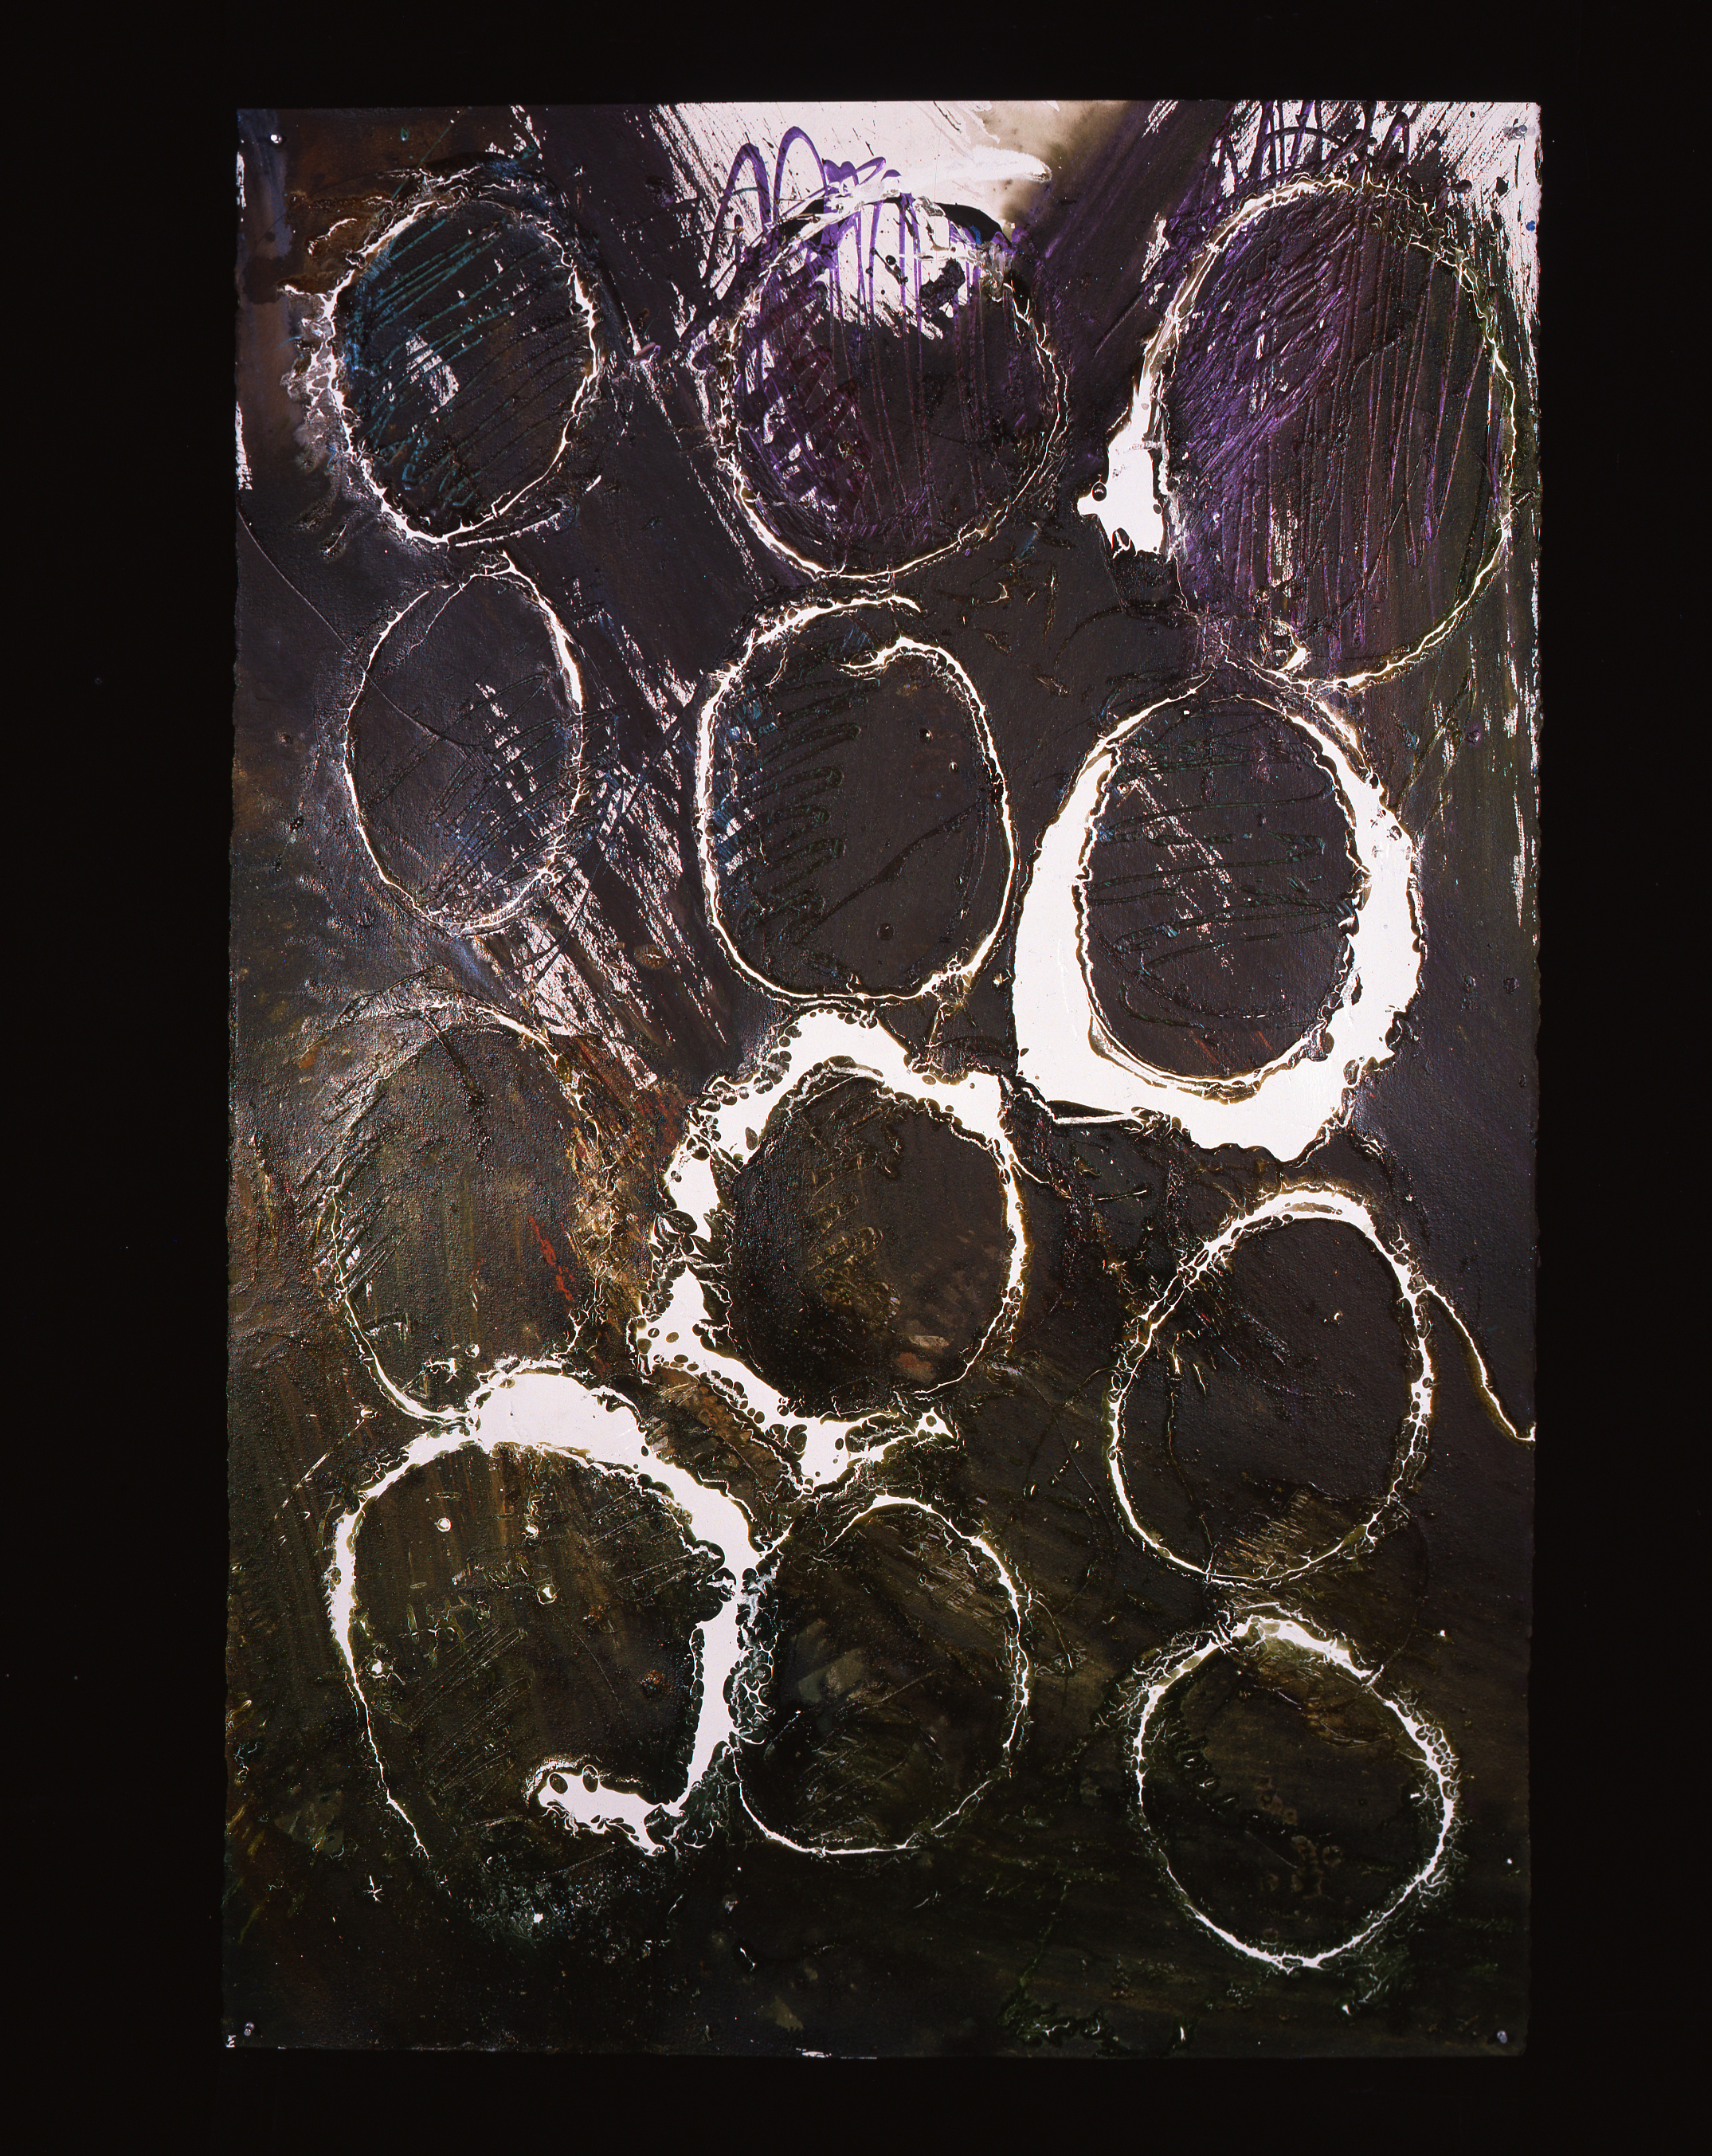 Dale Chihuly, Macchia Drawing #17, (1992, acrylicon paper, 60 x 40 inches), DC.92